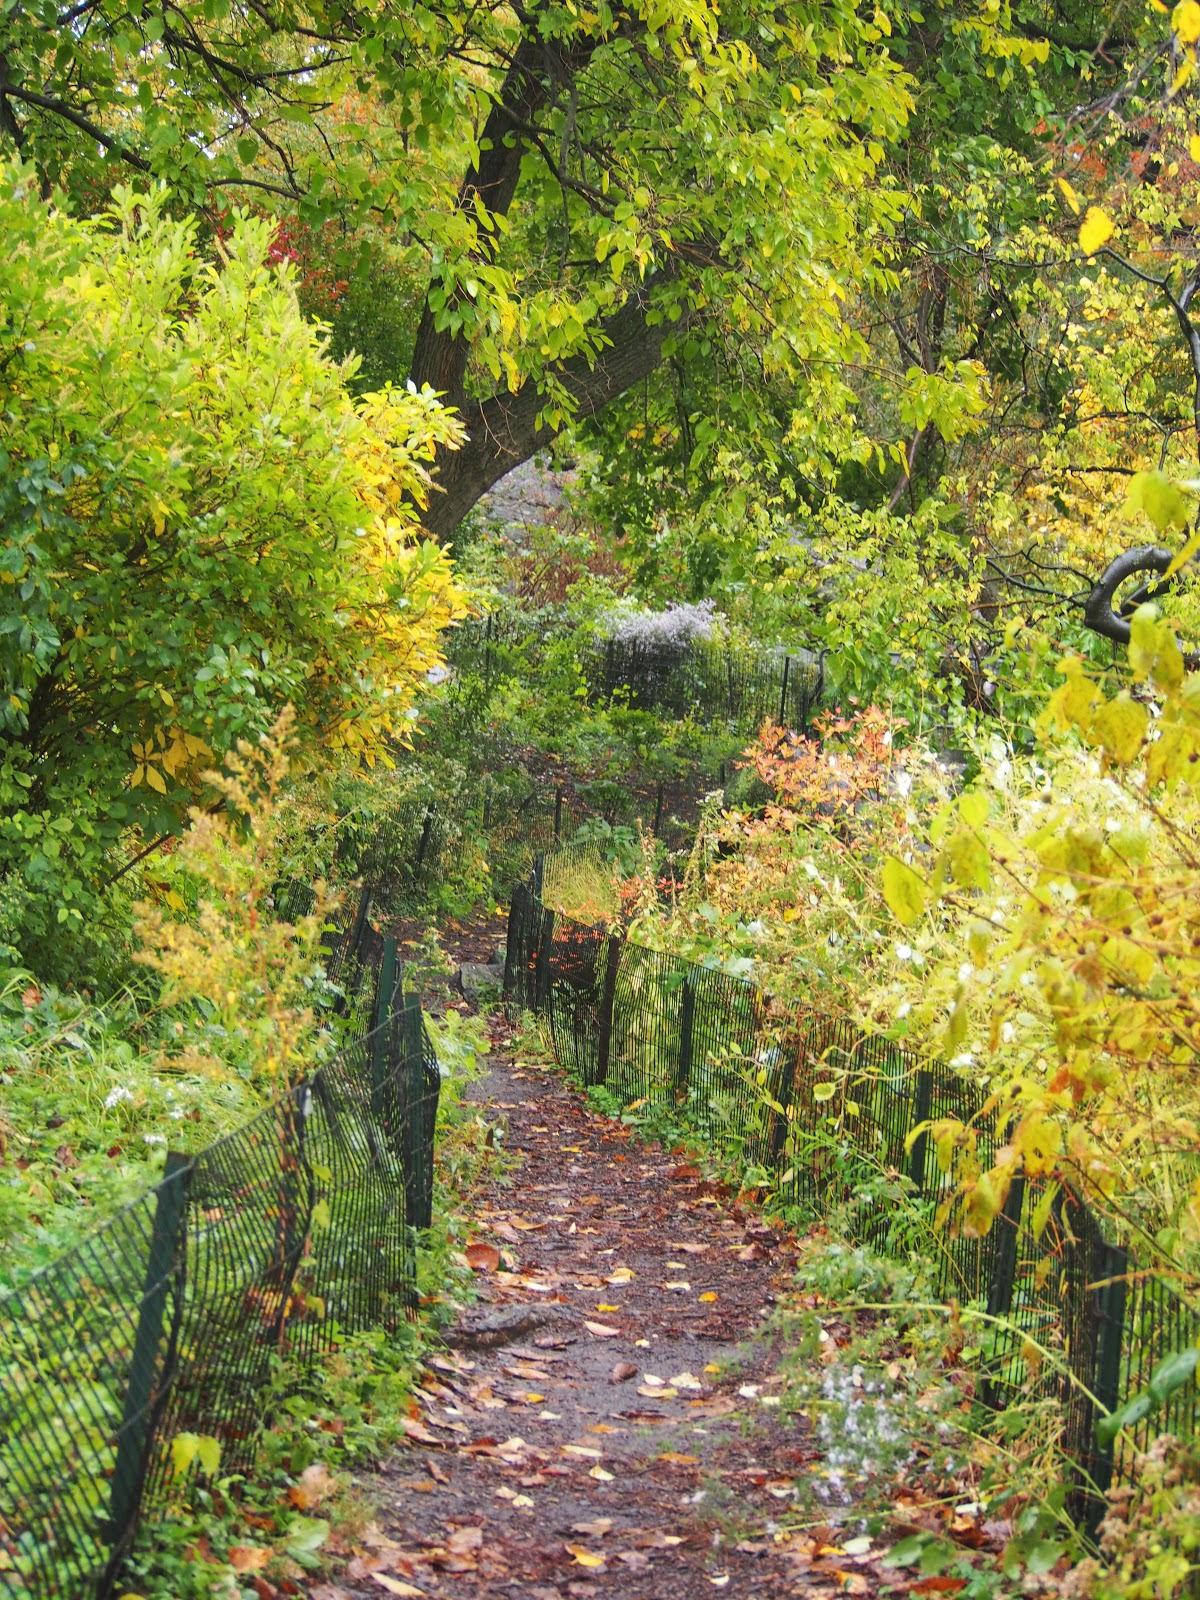 Wagner's Cove Path, #wagnerscovepath #centralpark #wagnerscove 2014 #rainyday #fall #foliage